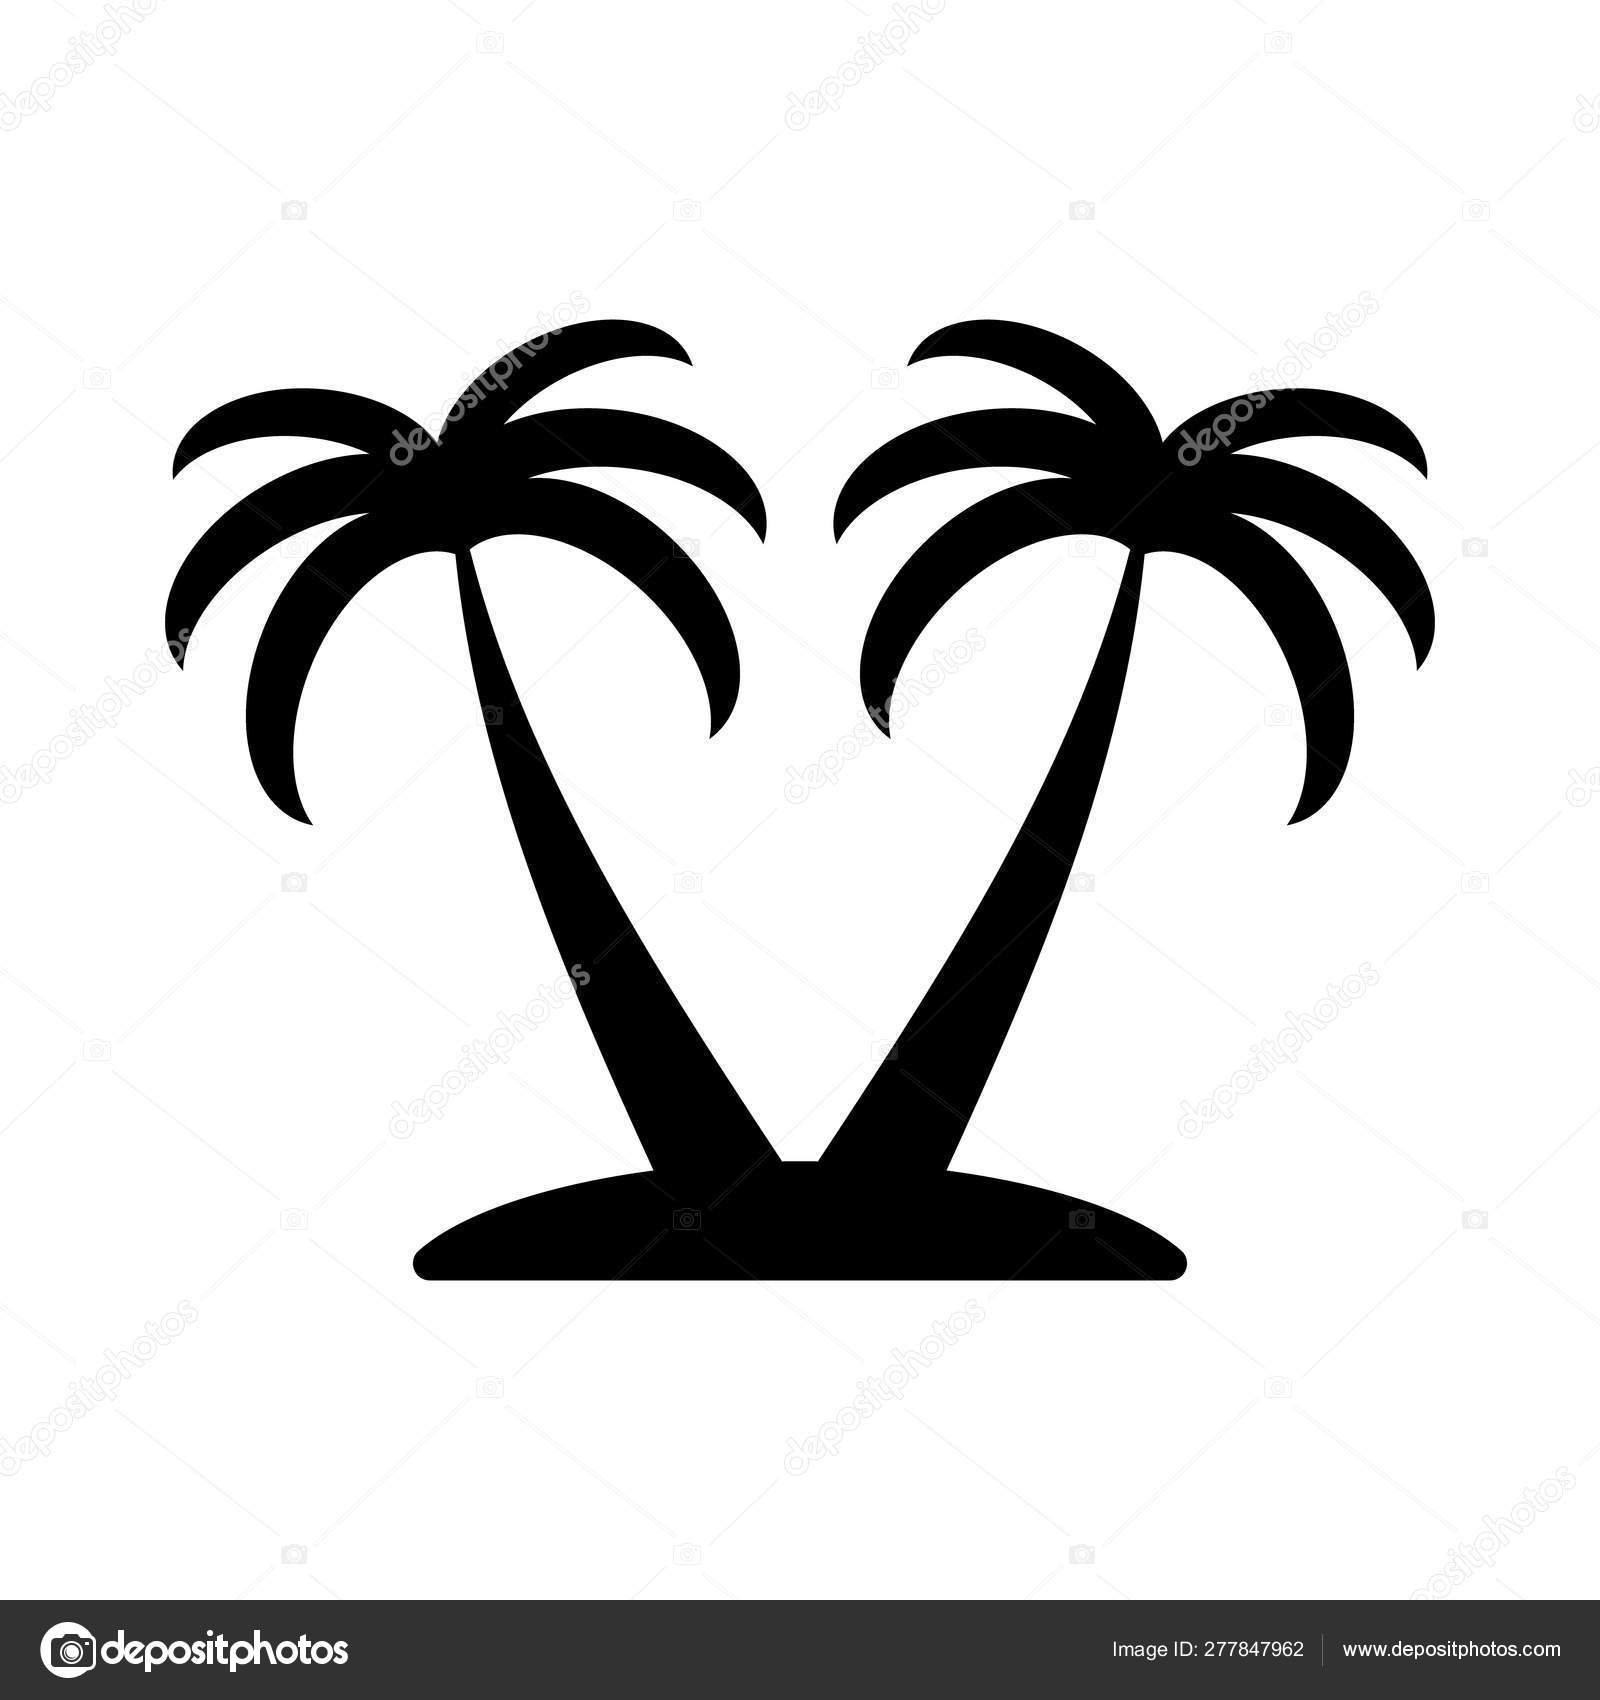 summer icon vacation symbol palm line silhouette tropical stock vector c irysha279 gmail com 277847962 summer icon vacation symbol palm line silhouette tropical stock vector c irysha279 gmail com 277847962